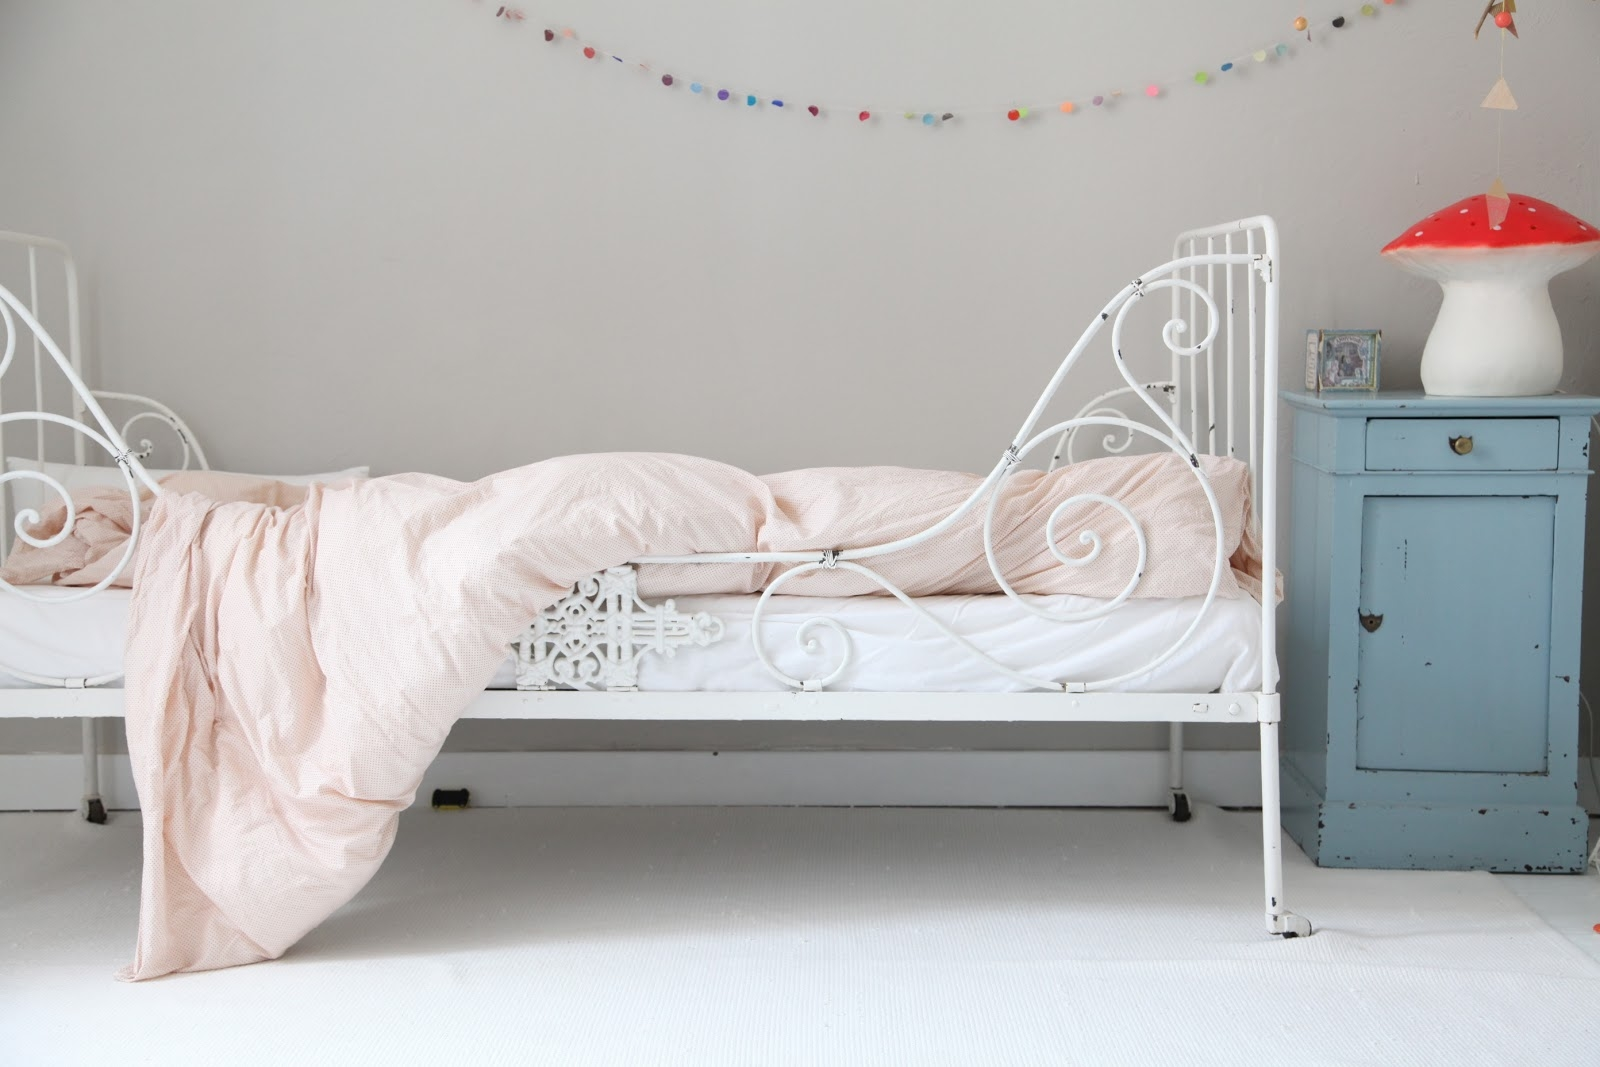 Metal Toddler Bed - Foter